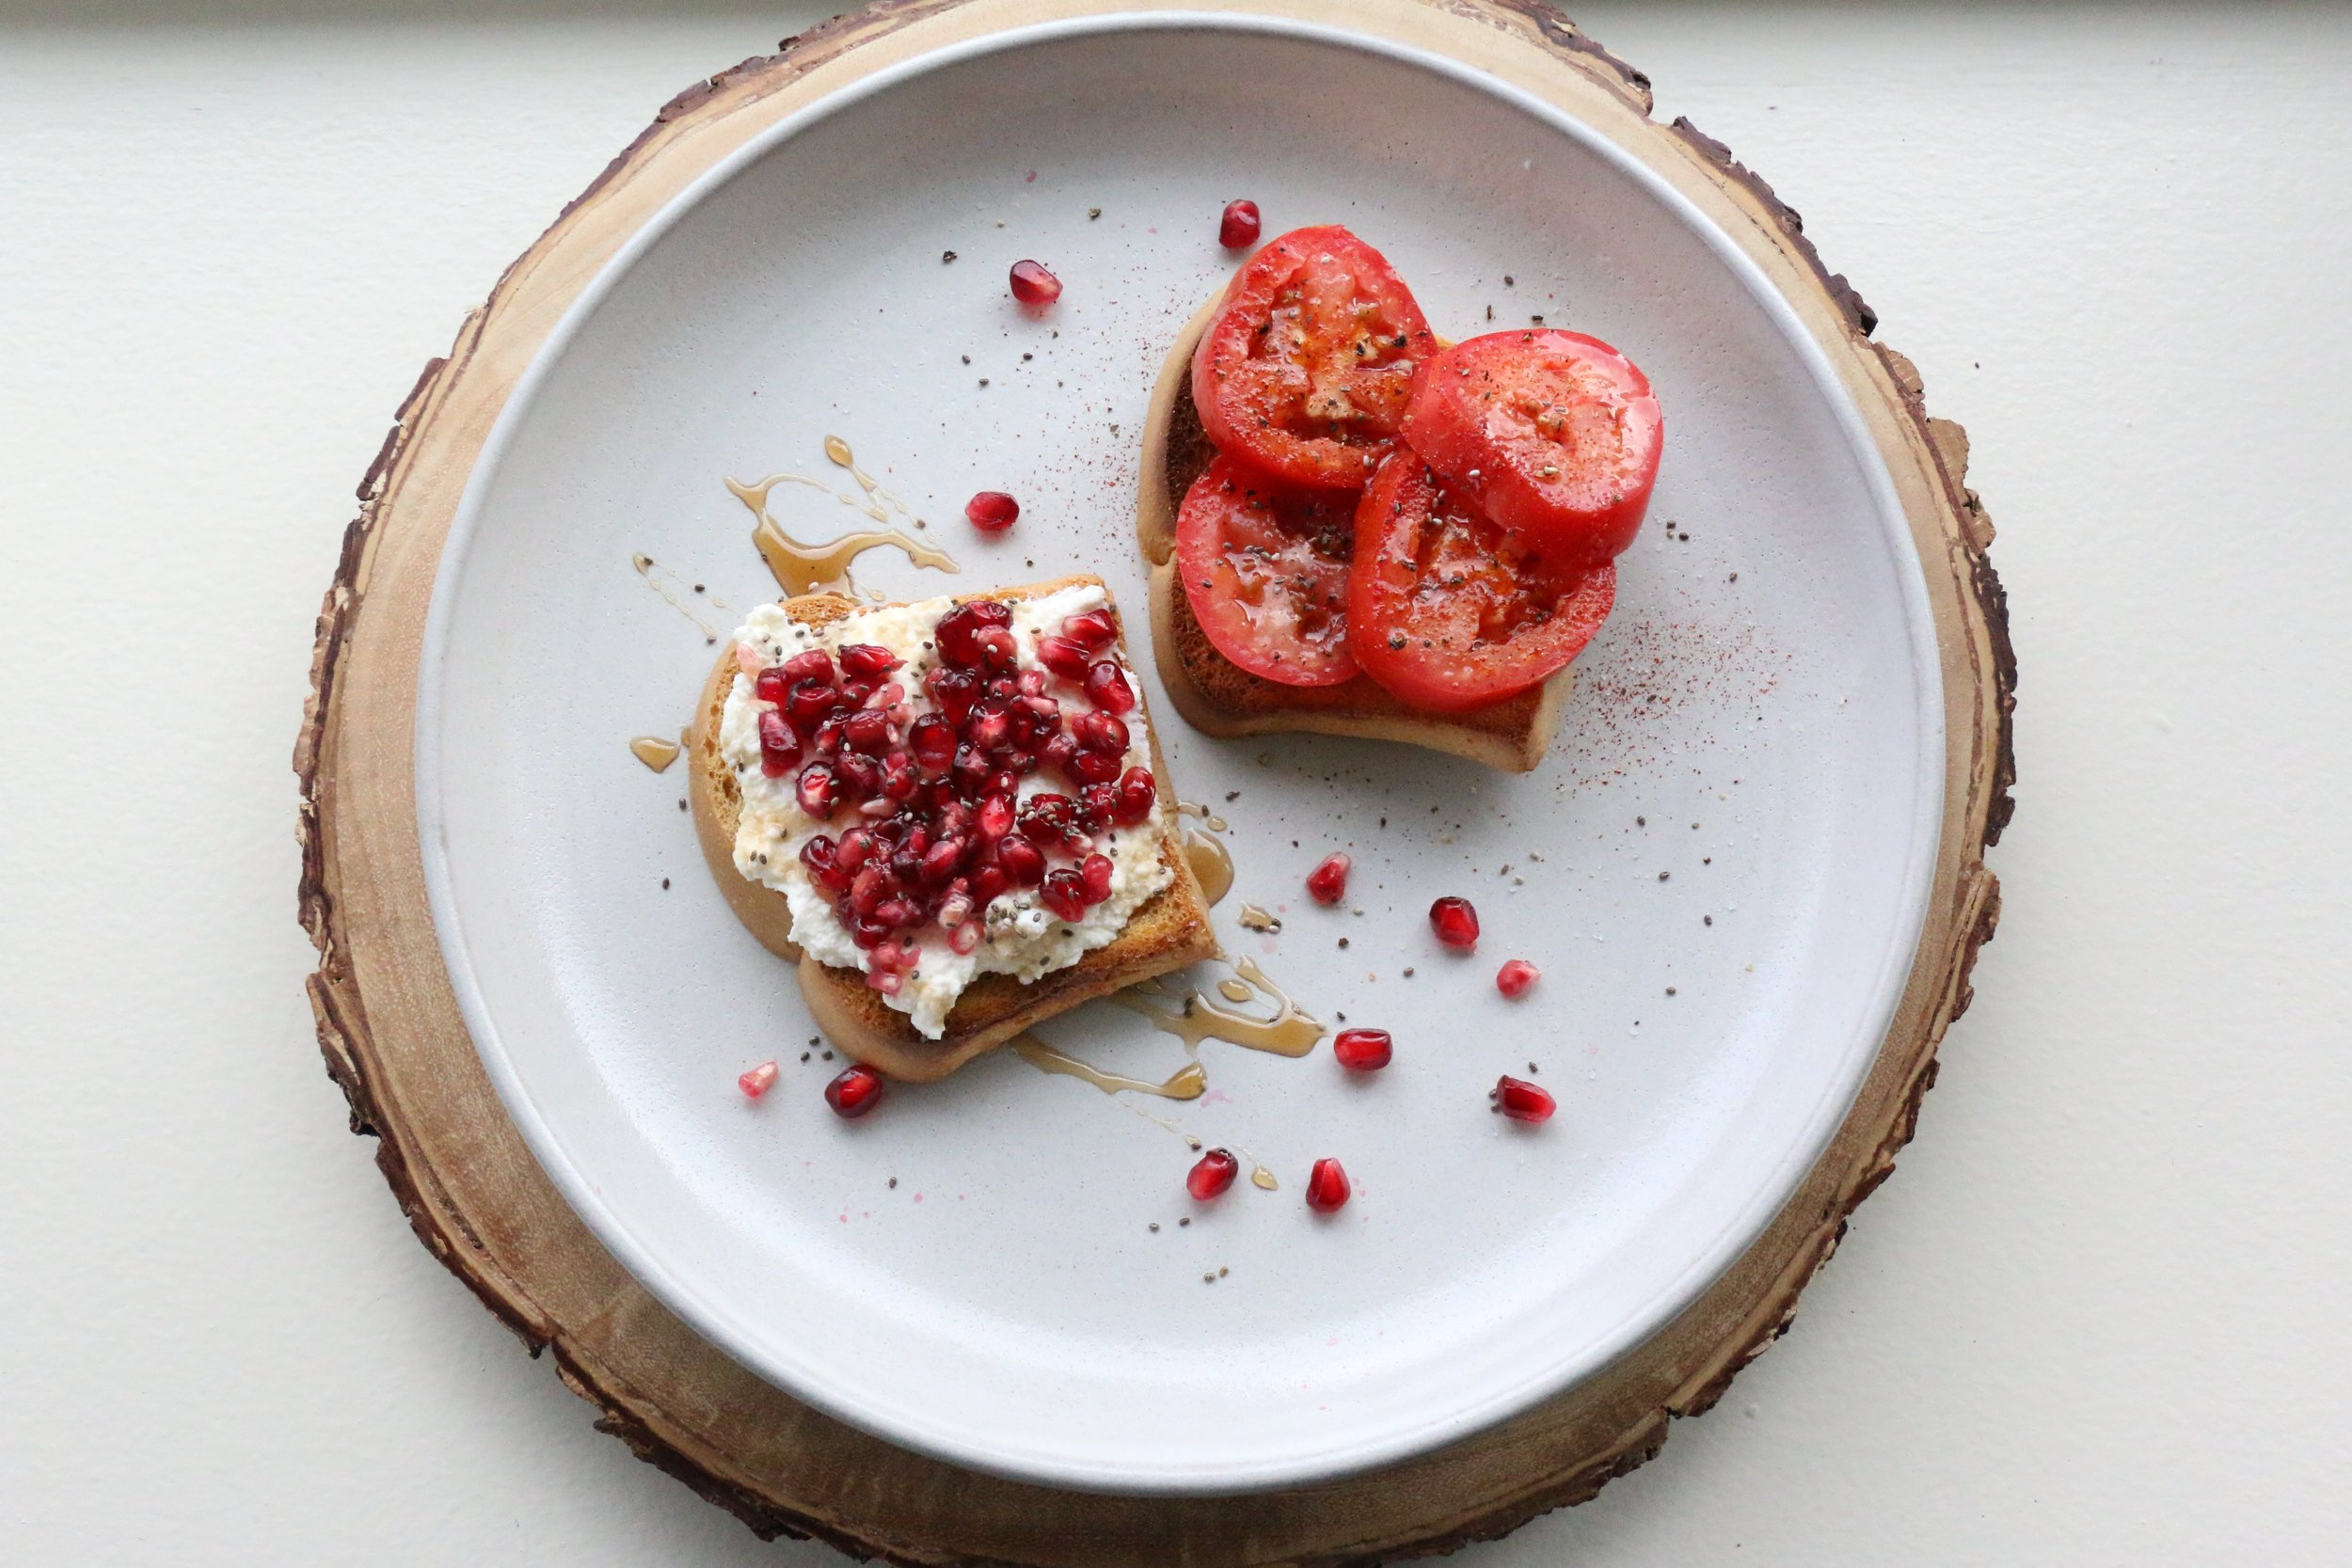 My Brekkie from this morning: Pomegranate Ricotta Toast with Agave & Tomato Olive Oil Toast with Sea Salt